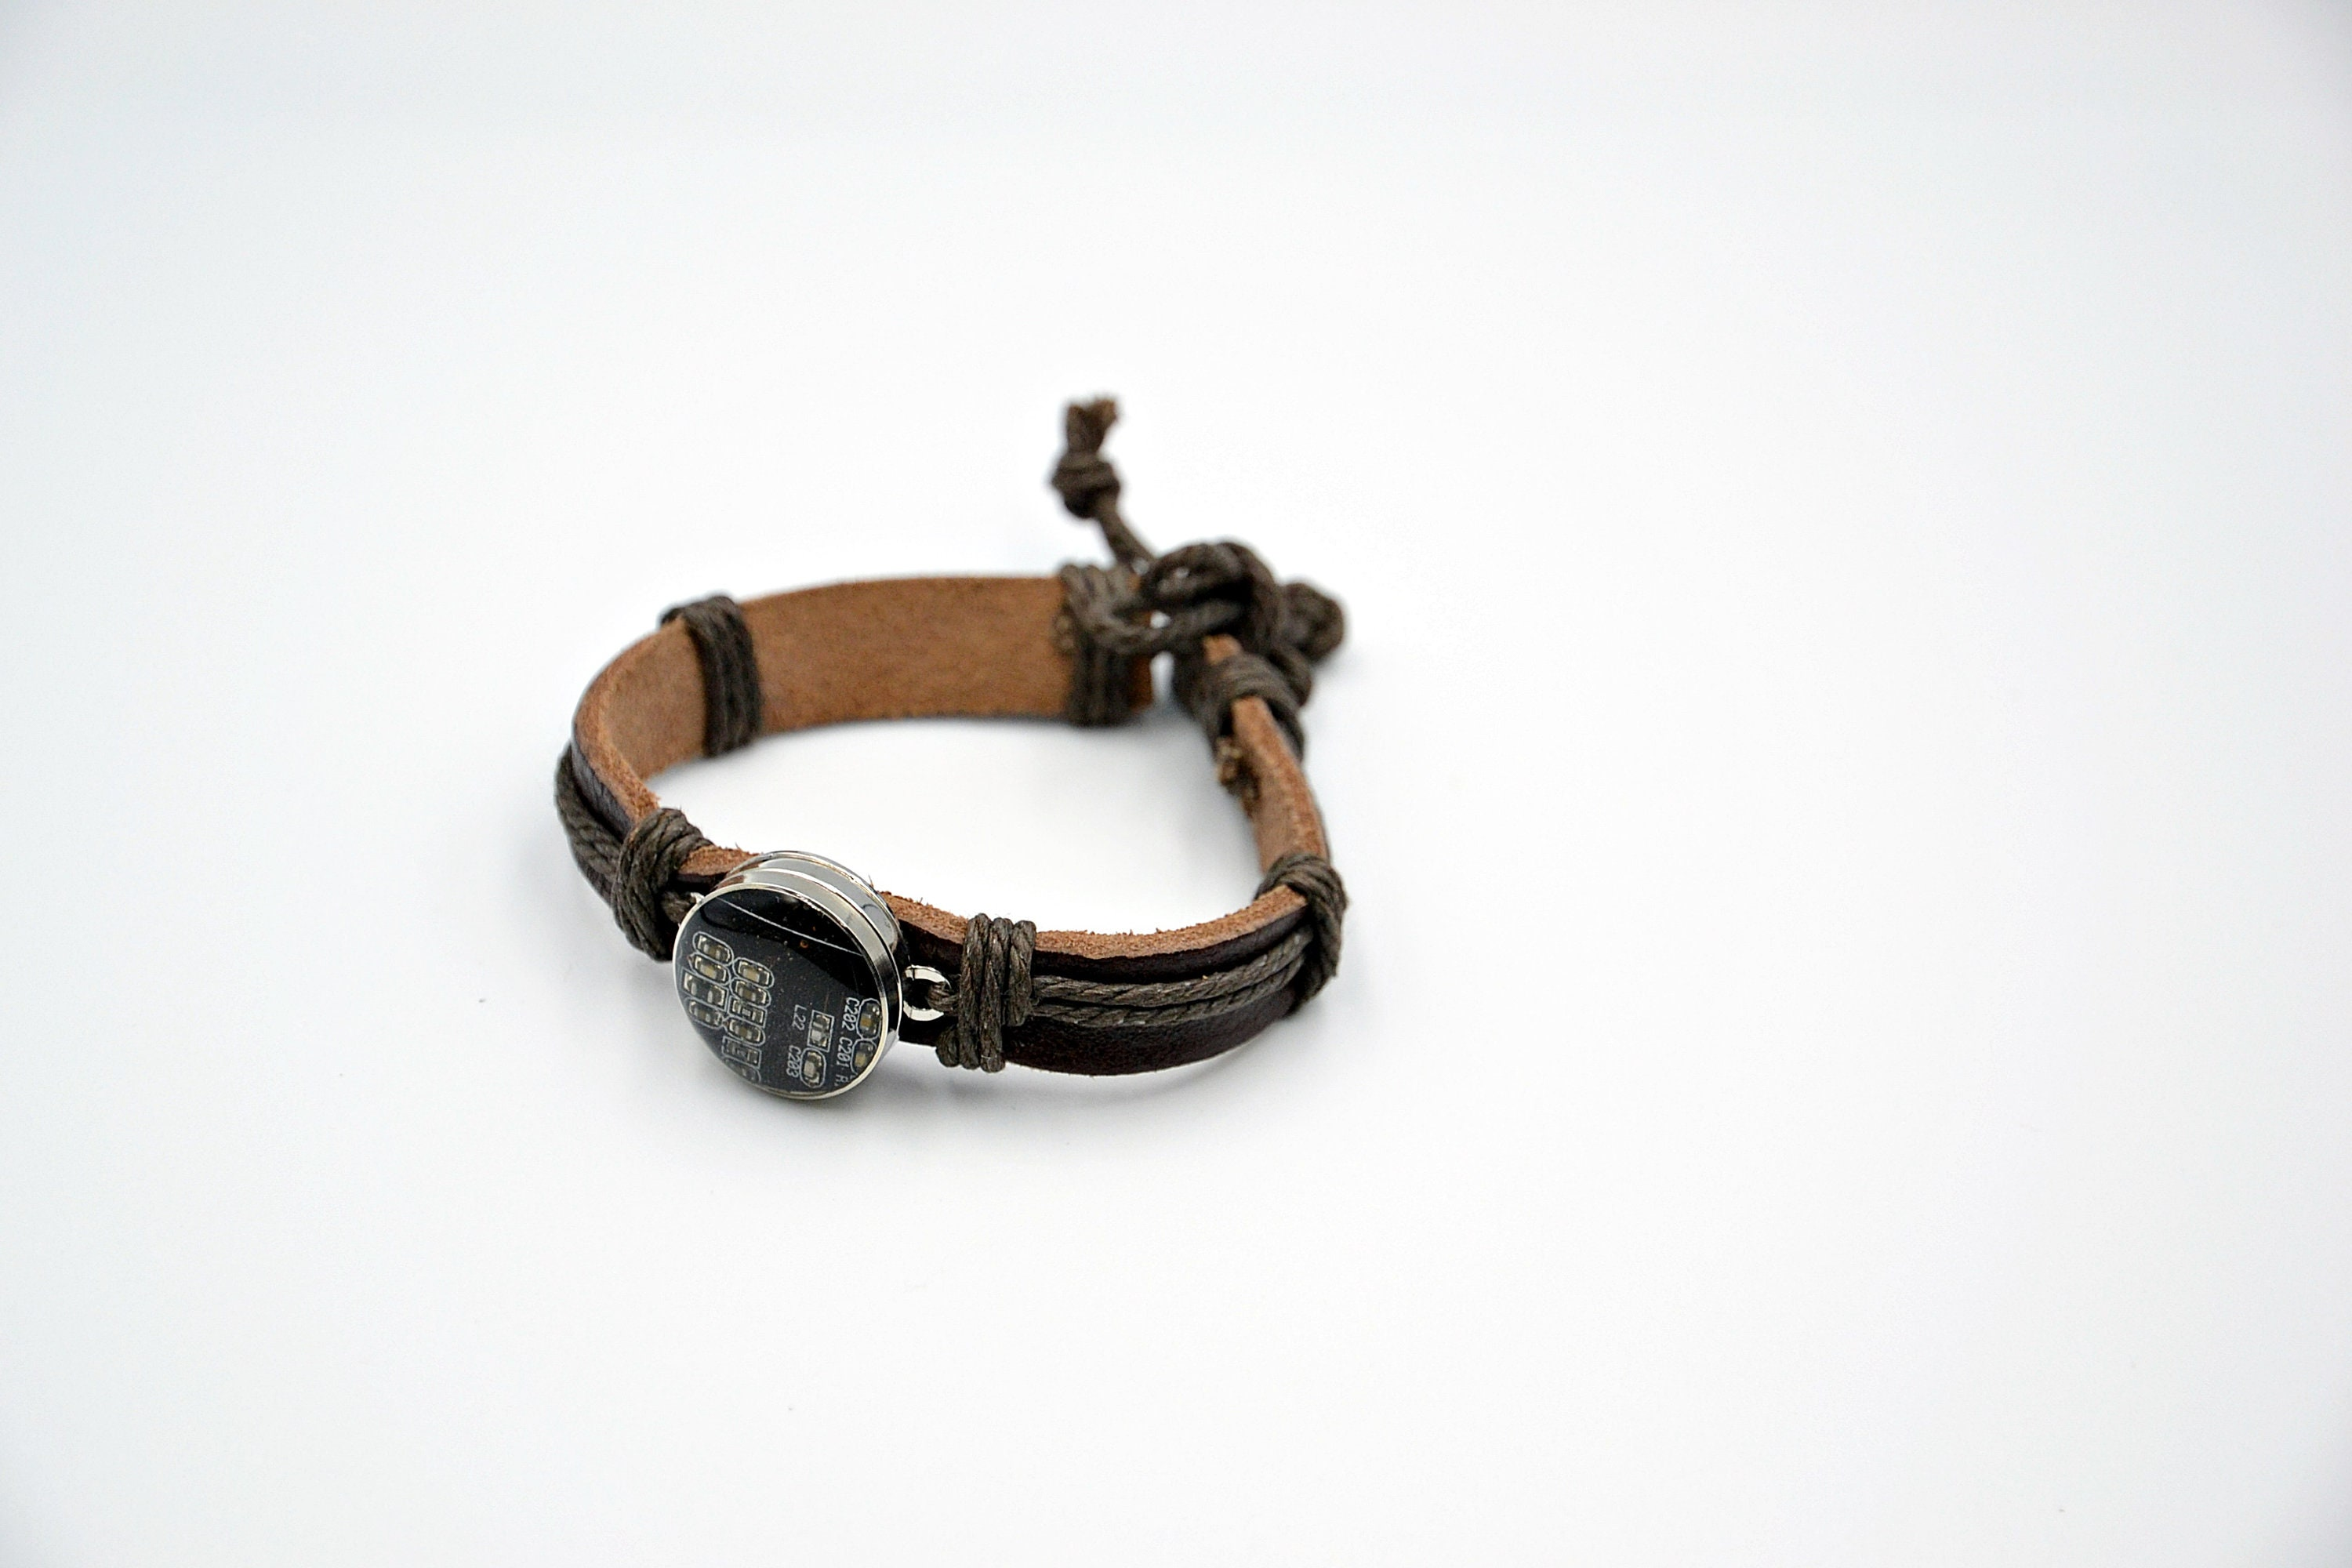 beautit geek leather bracelet with computer components etsy